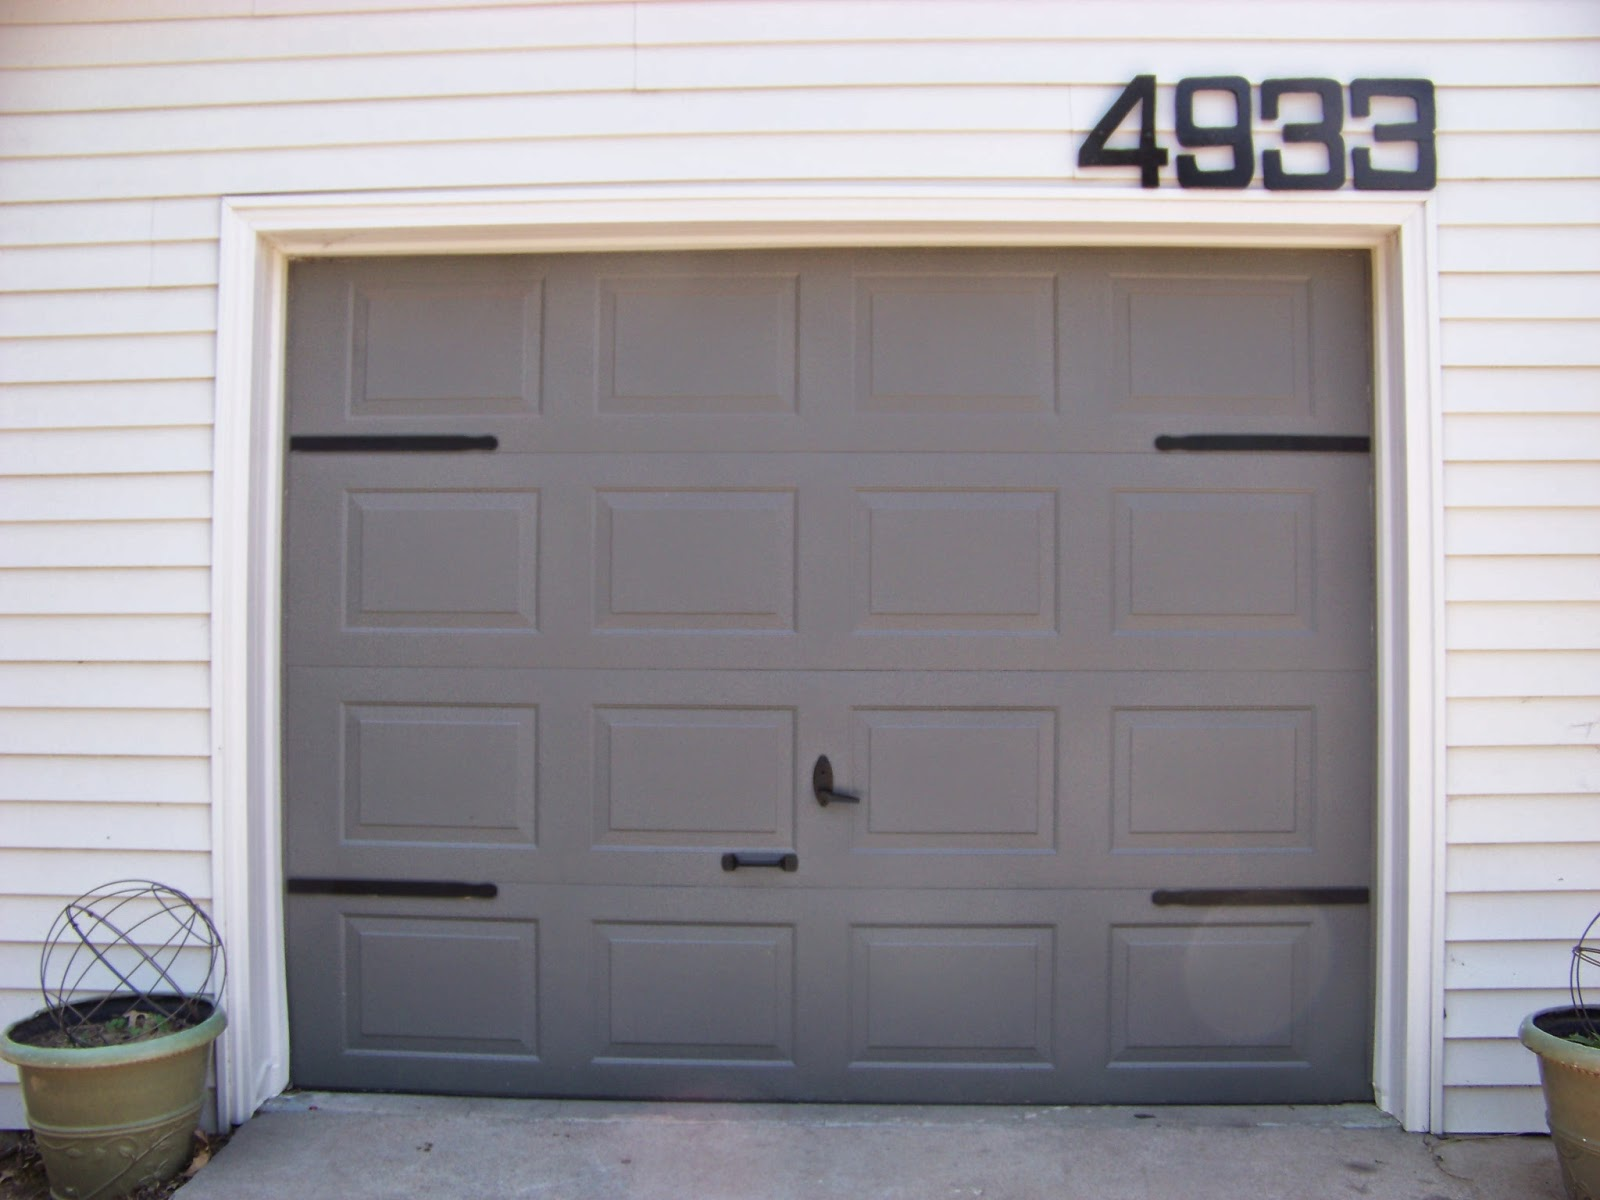 diy garage door8 DIY Garage Door Updates  Remodelaholic  Bloglovin